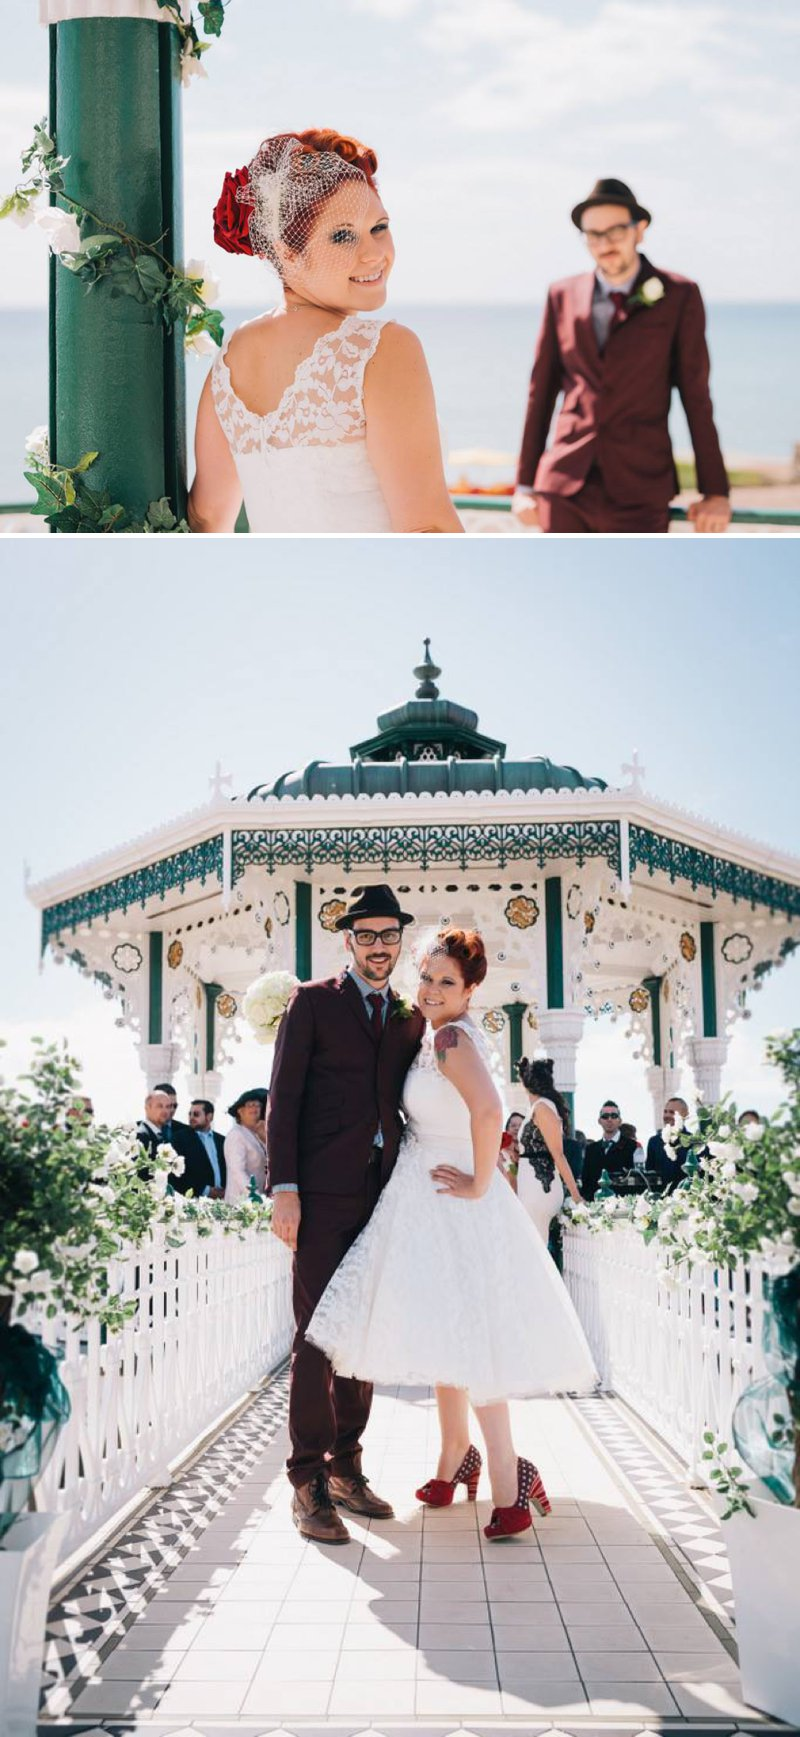 50s Mod Inspired Wedding With An Outdoor Ceremony At Brighton Bandstand And Reception At Stanmer House With Bride In Candy Anthony Gown And Red Irregular Choice Shoes With Groom In Burgundy Suit 5